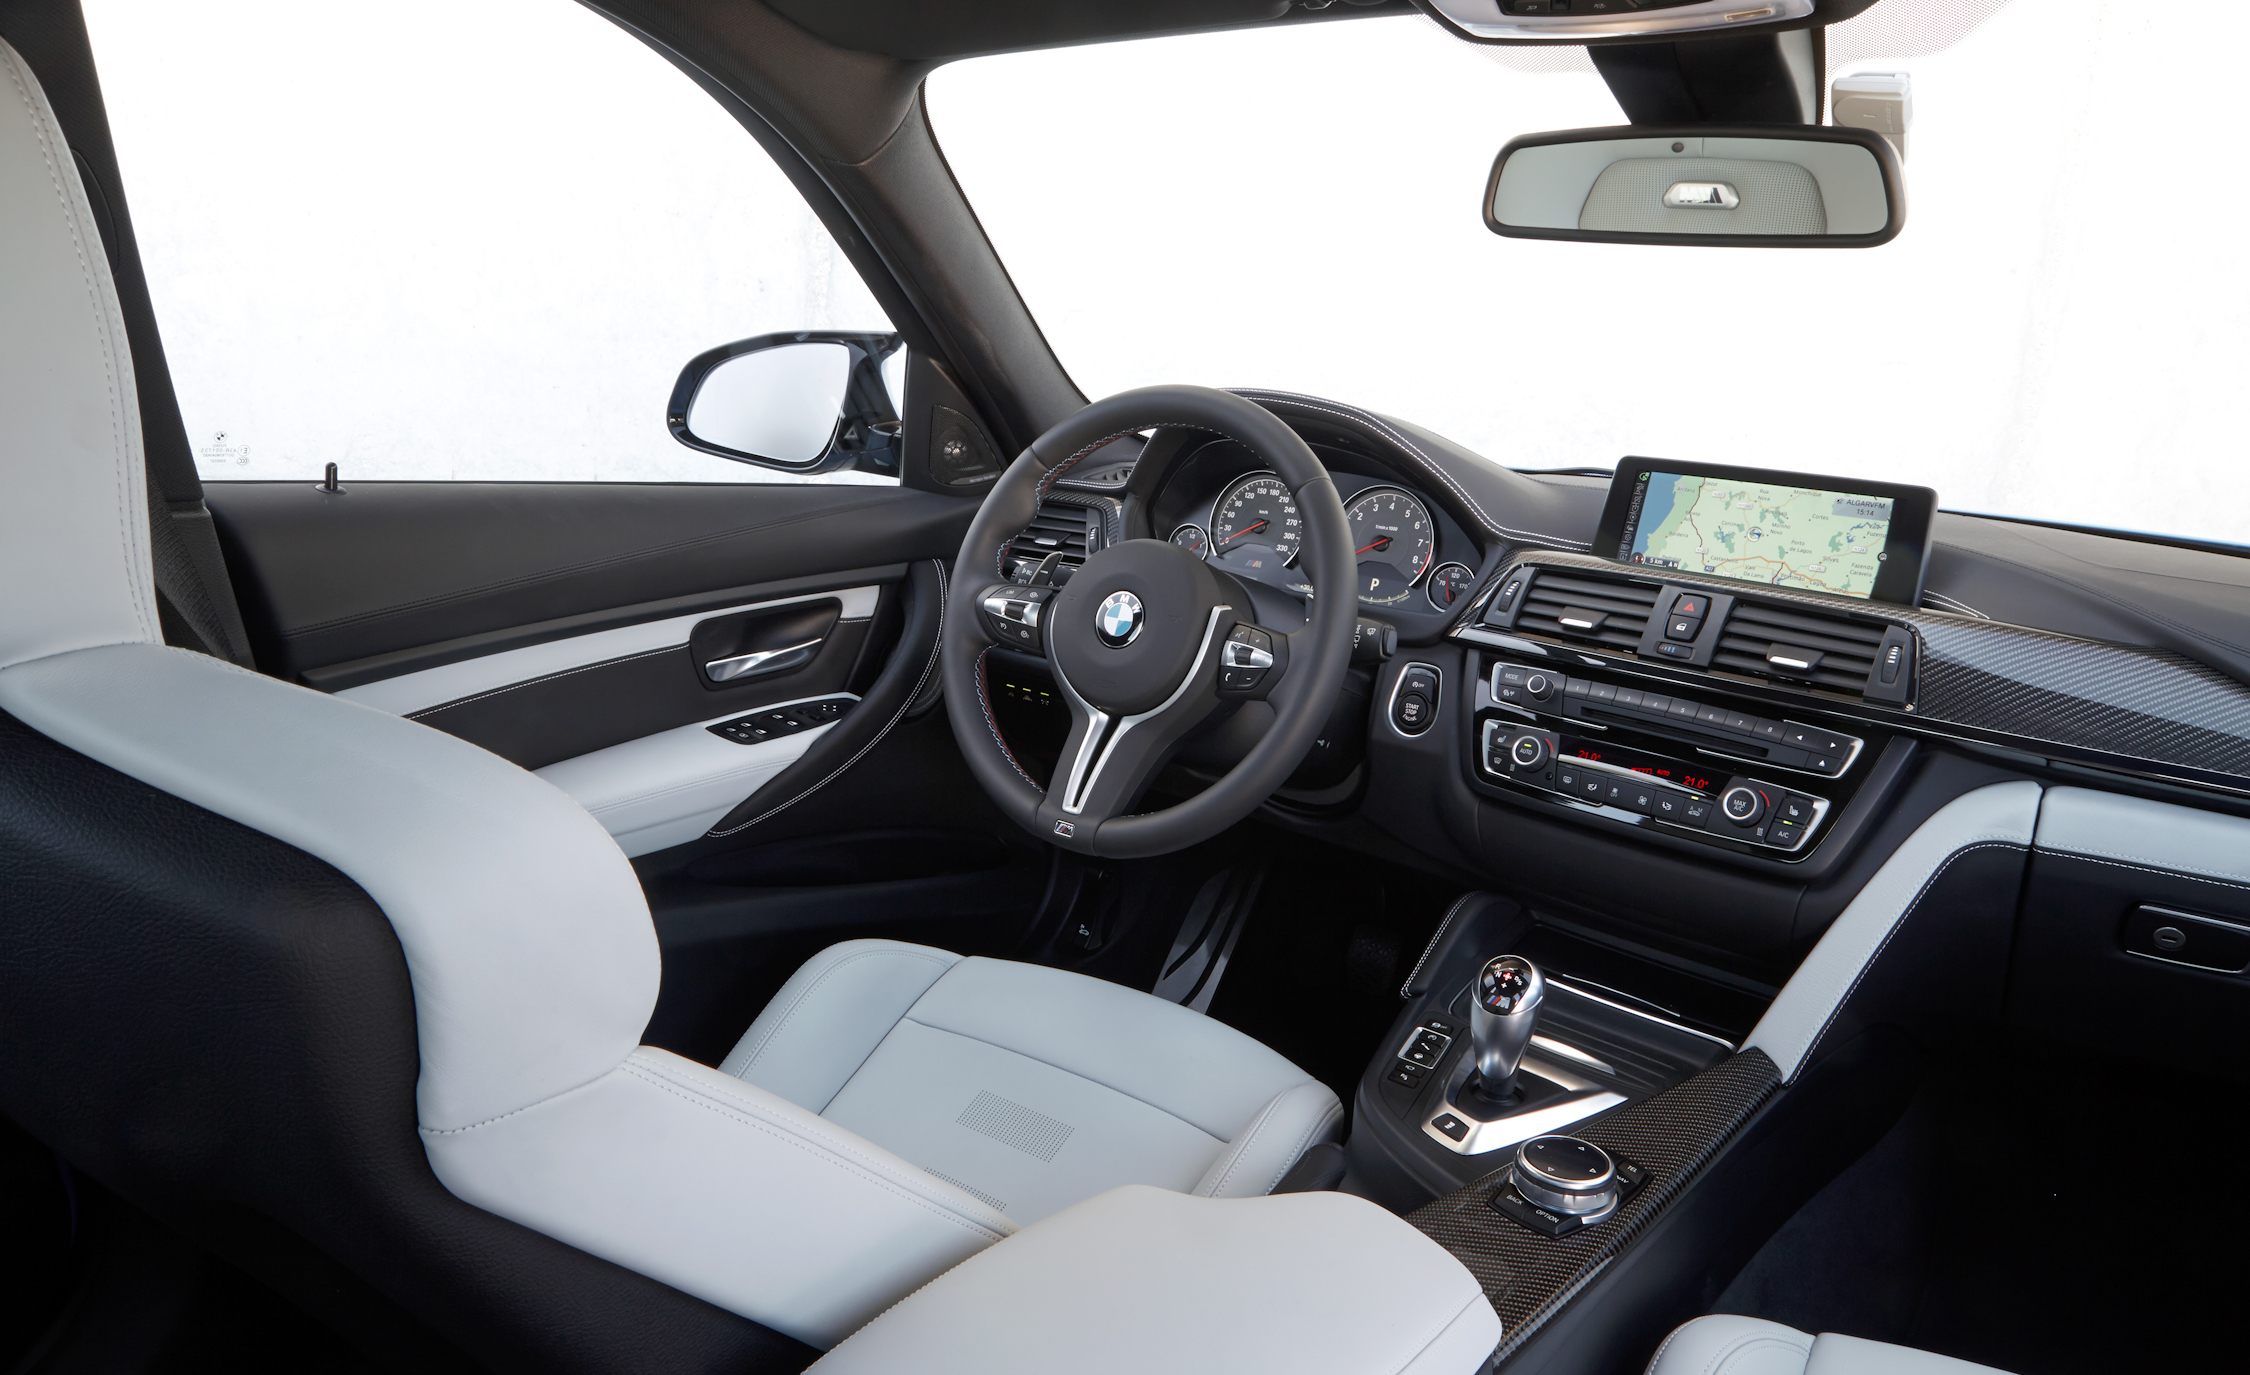 2015 BMW M3 Sedan Interior (Photo 31 of 55)